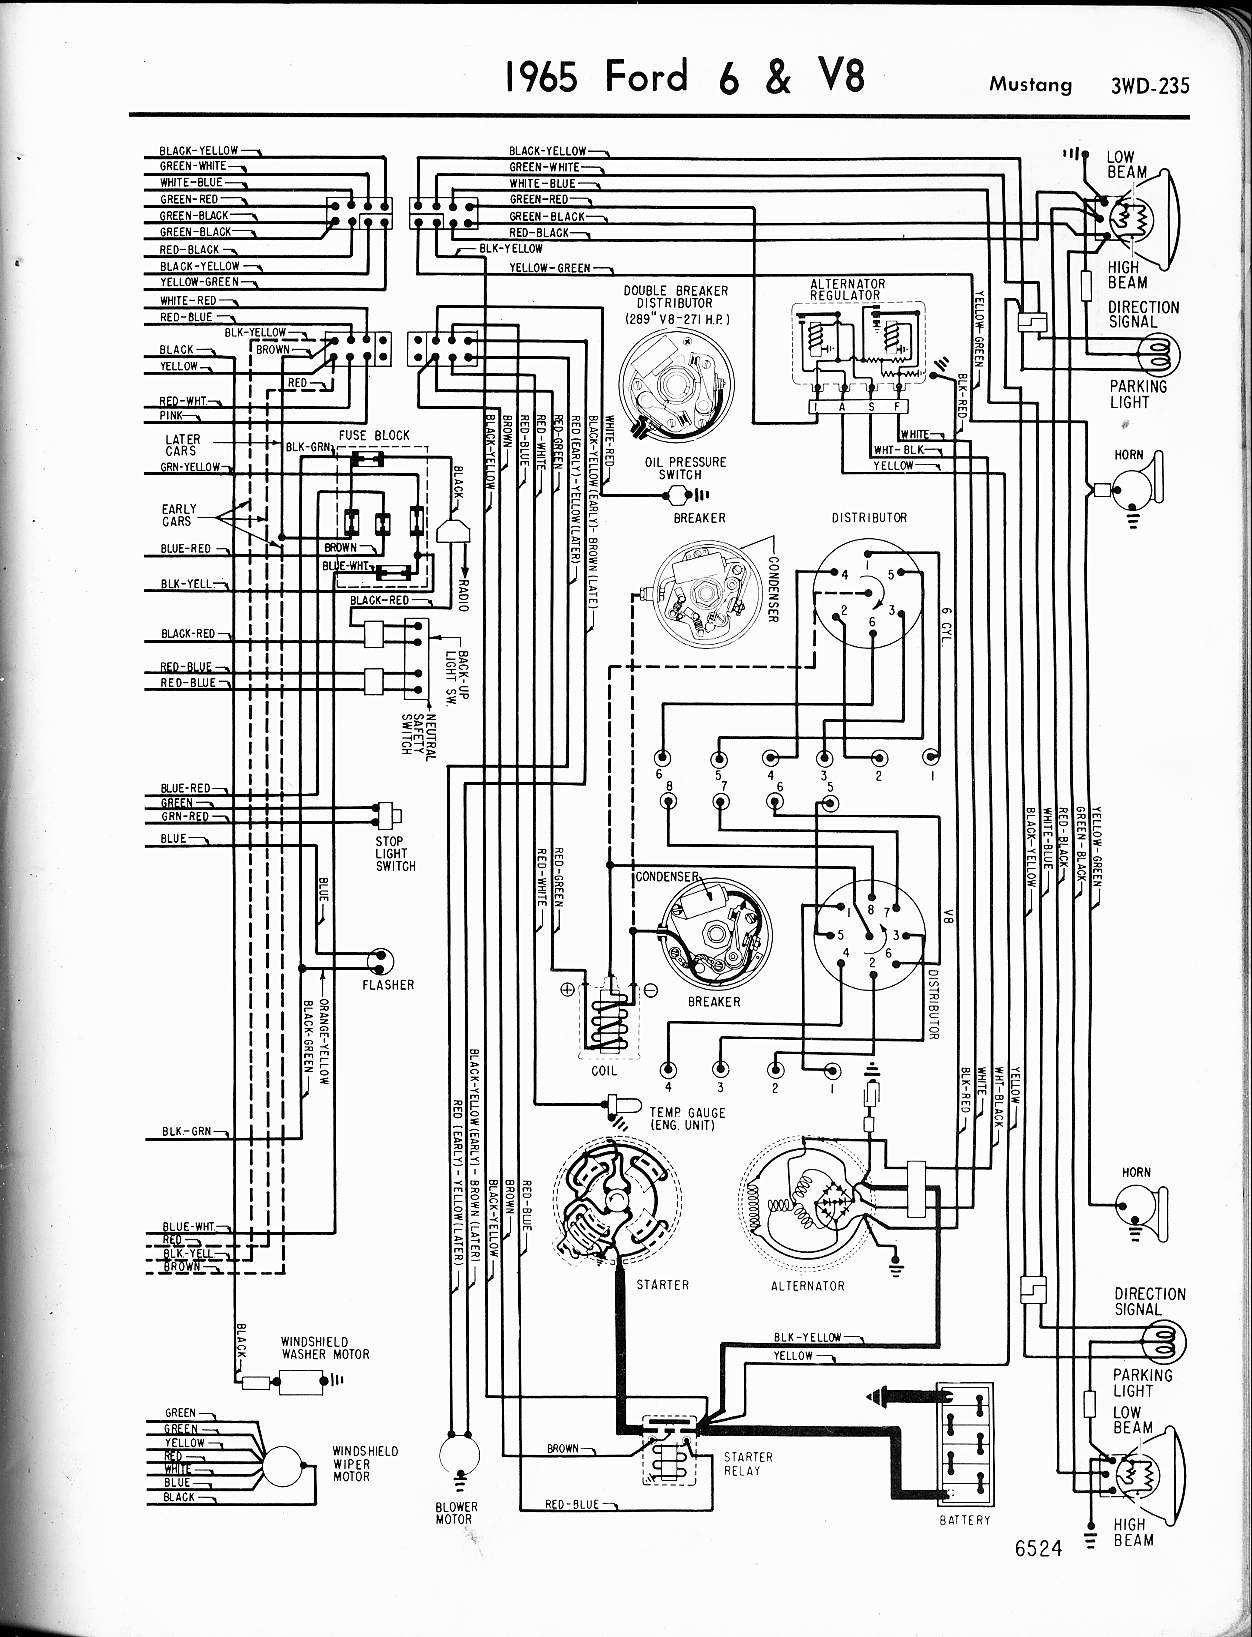 1965_mustang_wiring_2 69 mustang wiring diagram 1969 ford f100 wiring diagram \u2022 wiring 1969 mustang dash wiring diagram at fashall.co